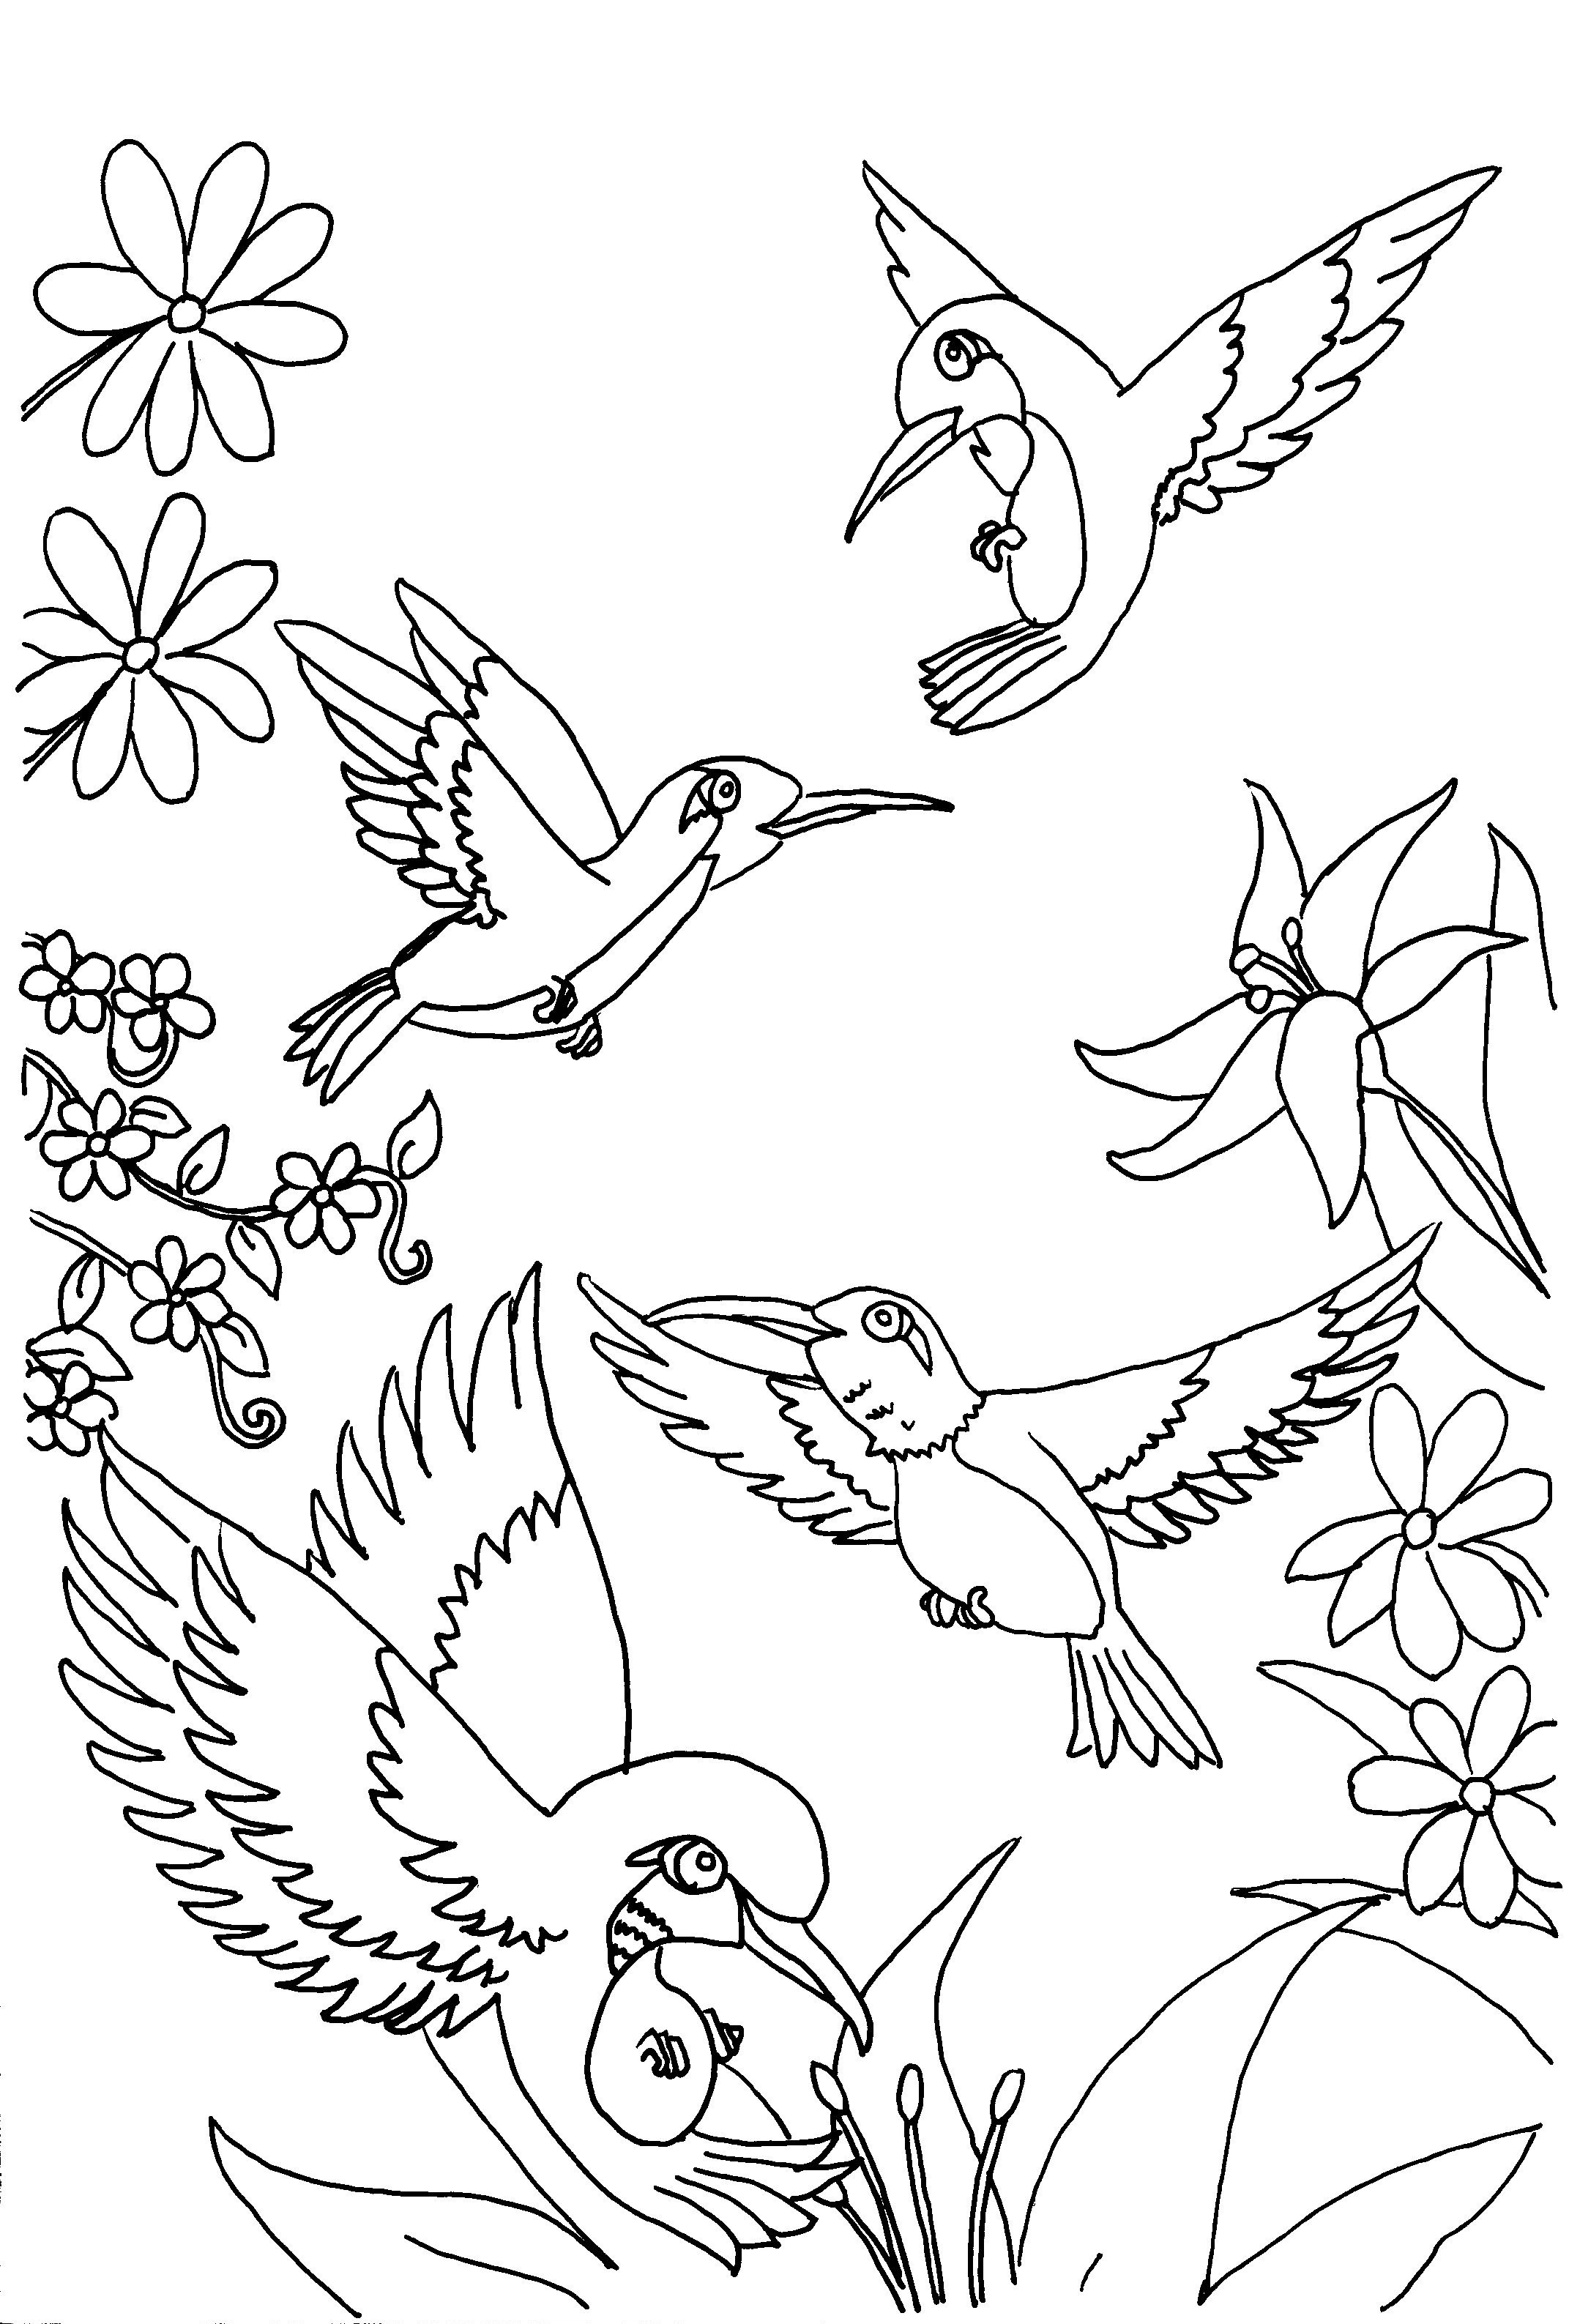 printable bird coloring pages free printable hummingbird coloring pages for kids bird pages printable coloring